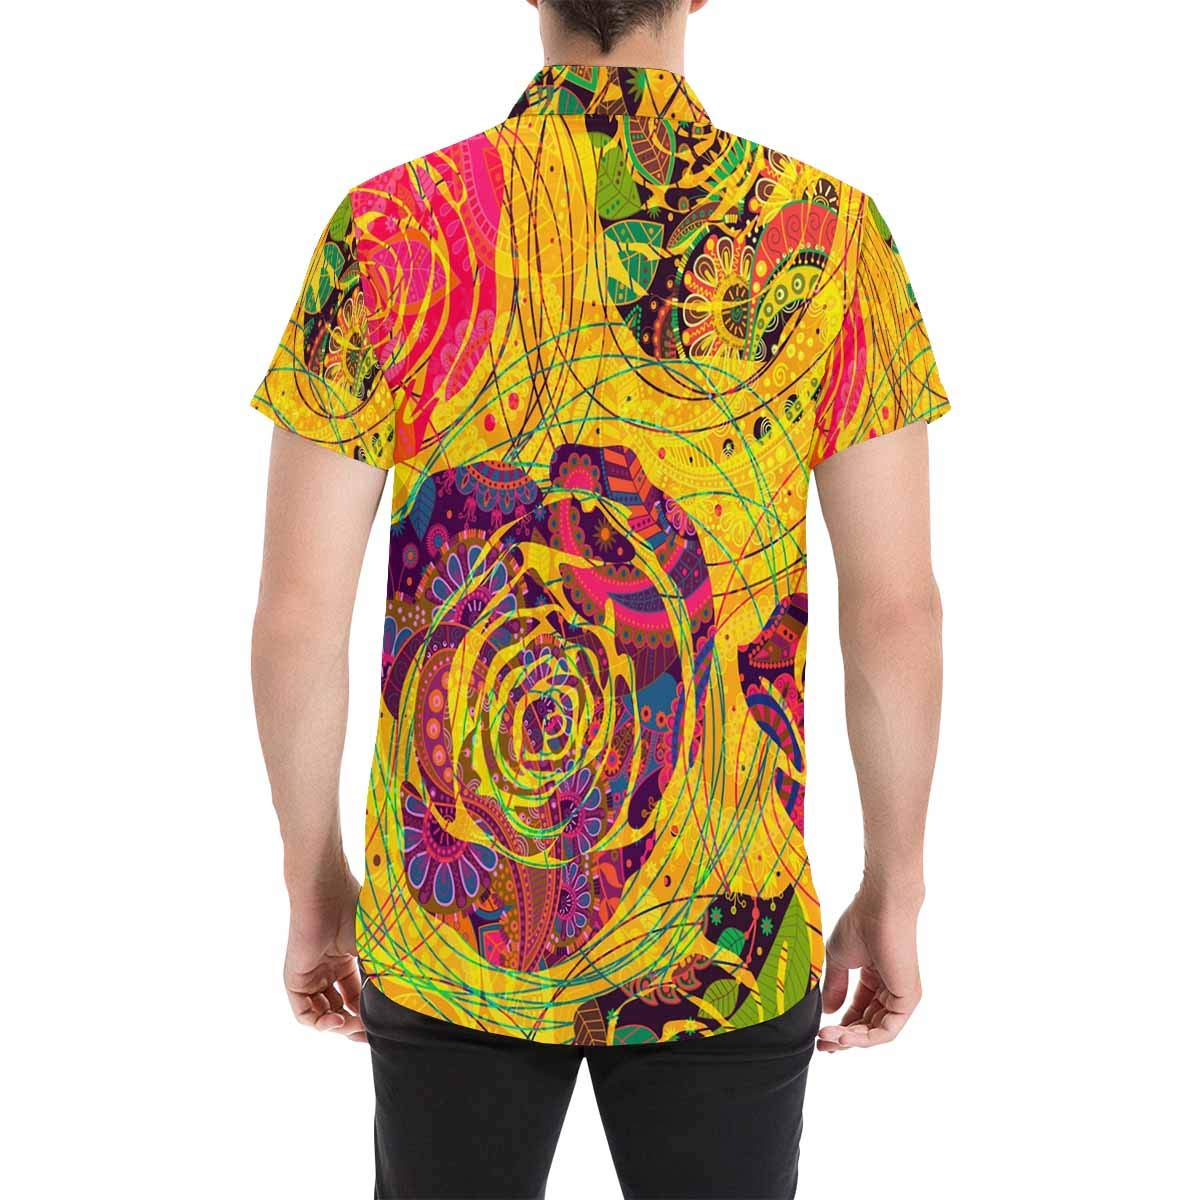 InterestPrint Button Down Shirts Colorful Flowers Printed Button Down Short Sleeve Shirts